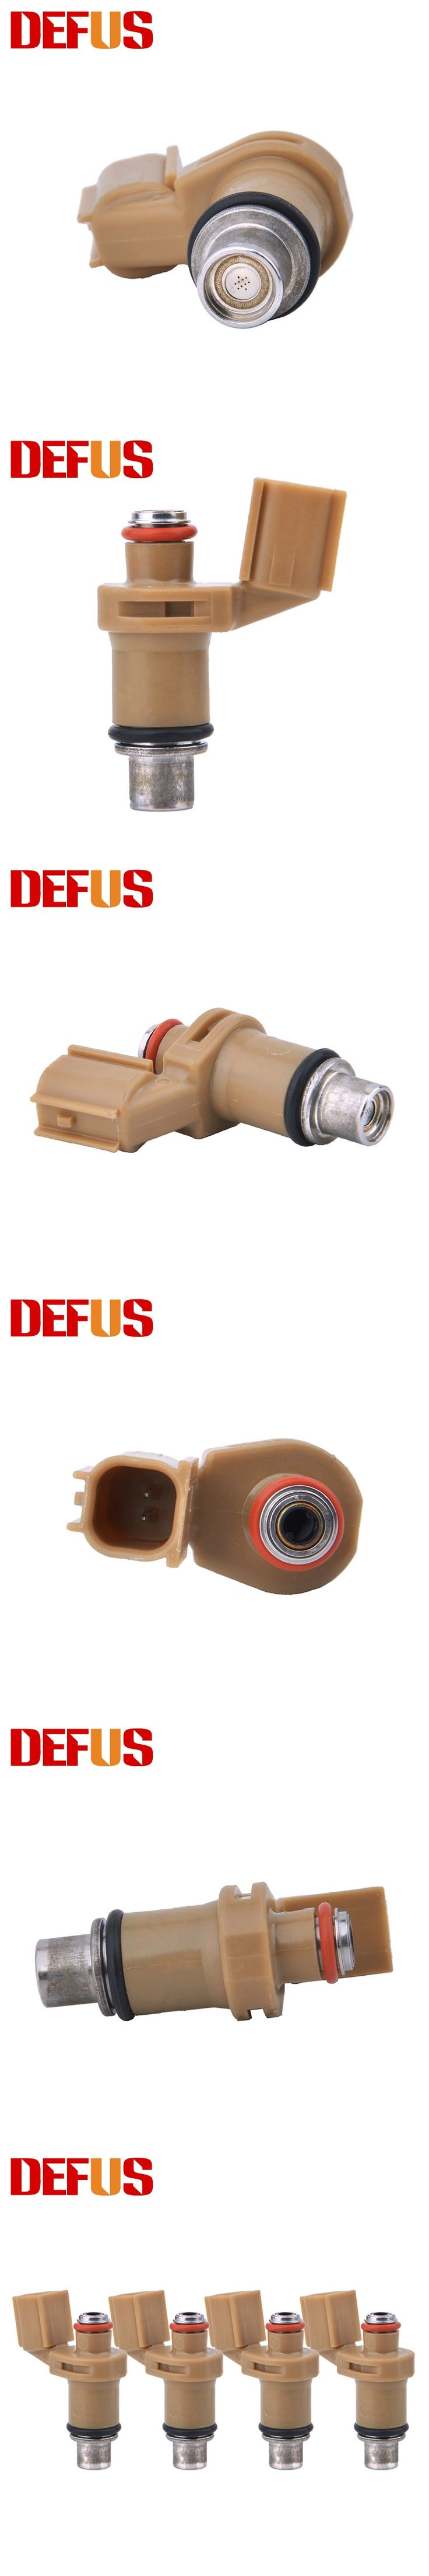 New Arrival Brand Fuel Injector For Motorcycle High Quality Nozzle 4 Holes Hot Sale 80-125CC Injection Flow 90cc/min Factory